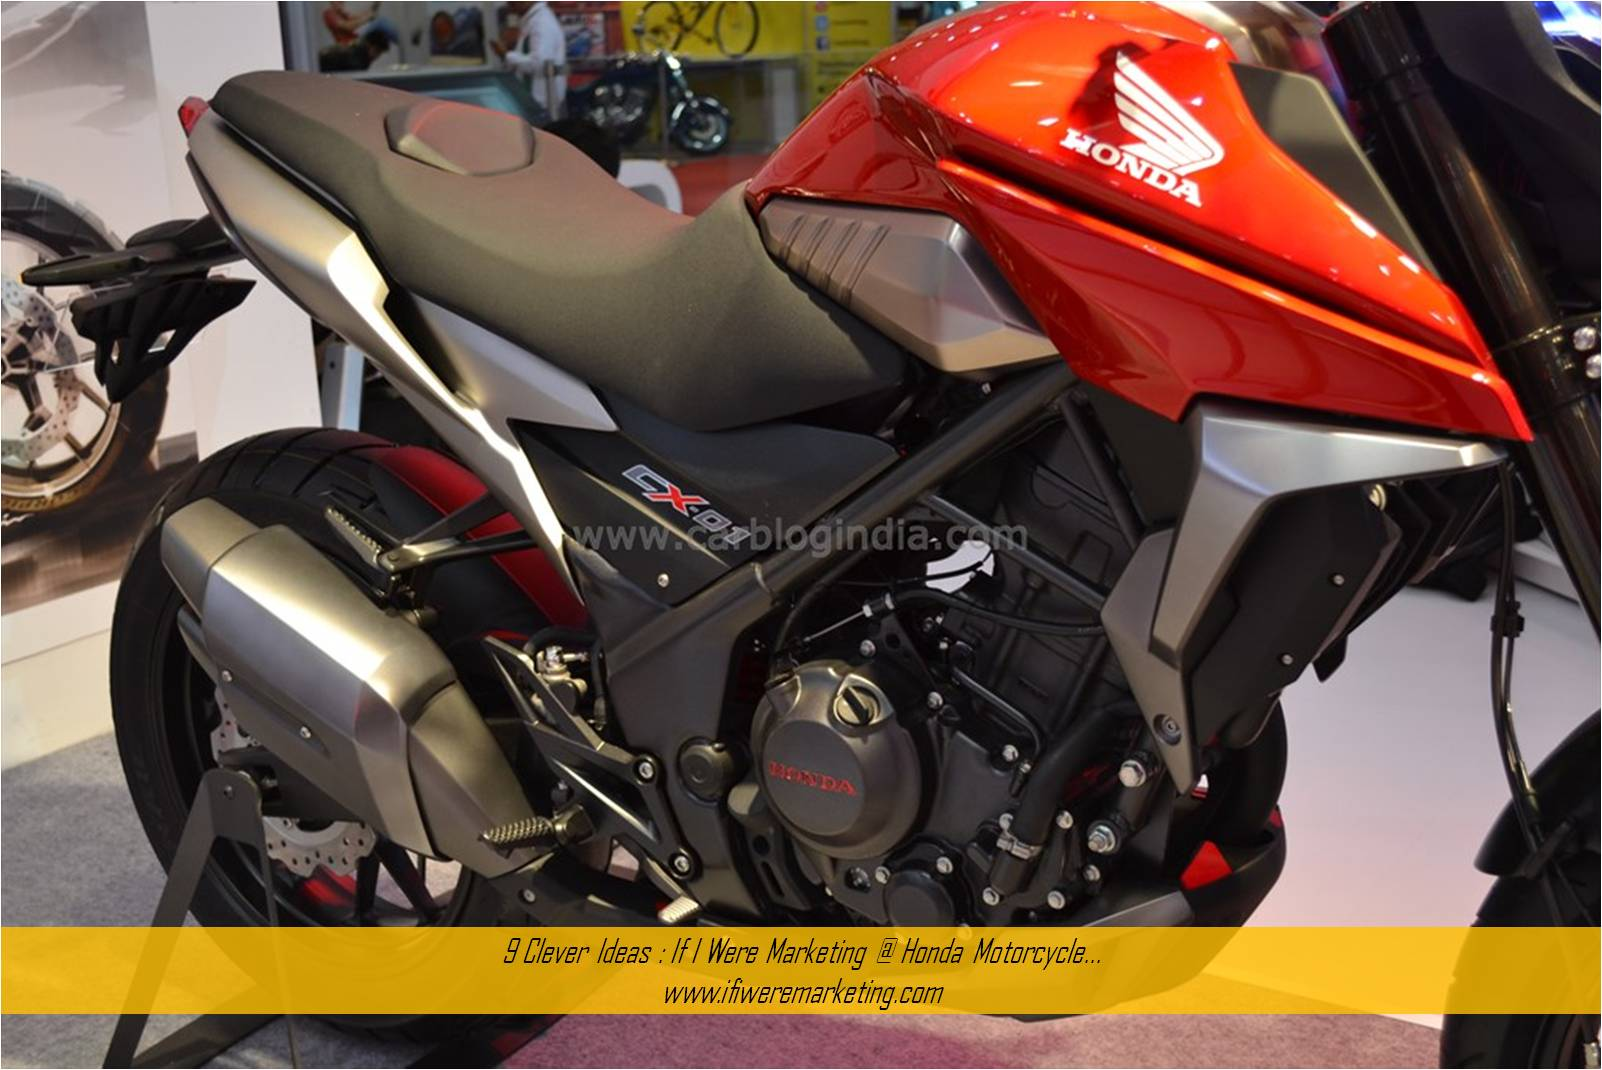 9 Clever Ideas If I Were Marketing Honda Motorcycle Motorcycles Designs